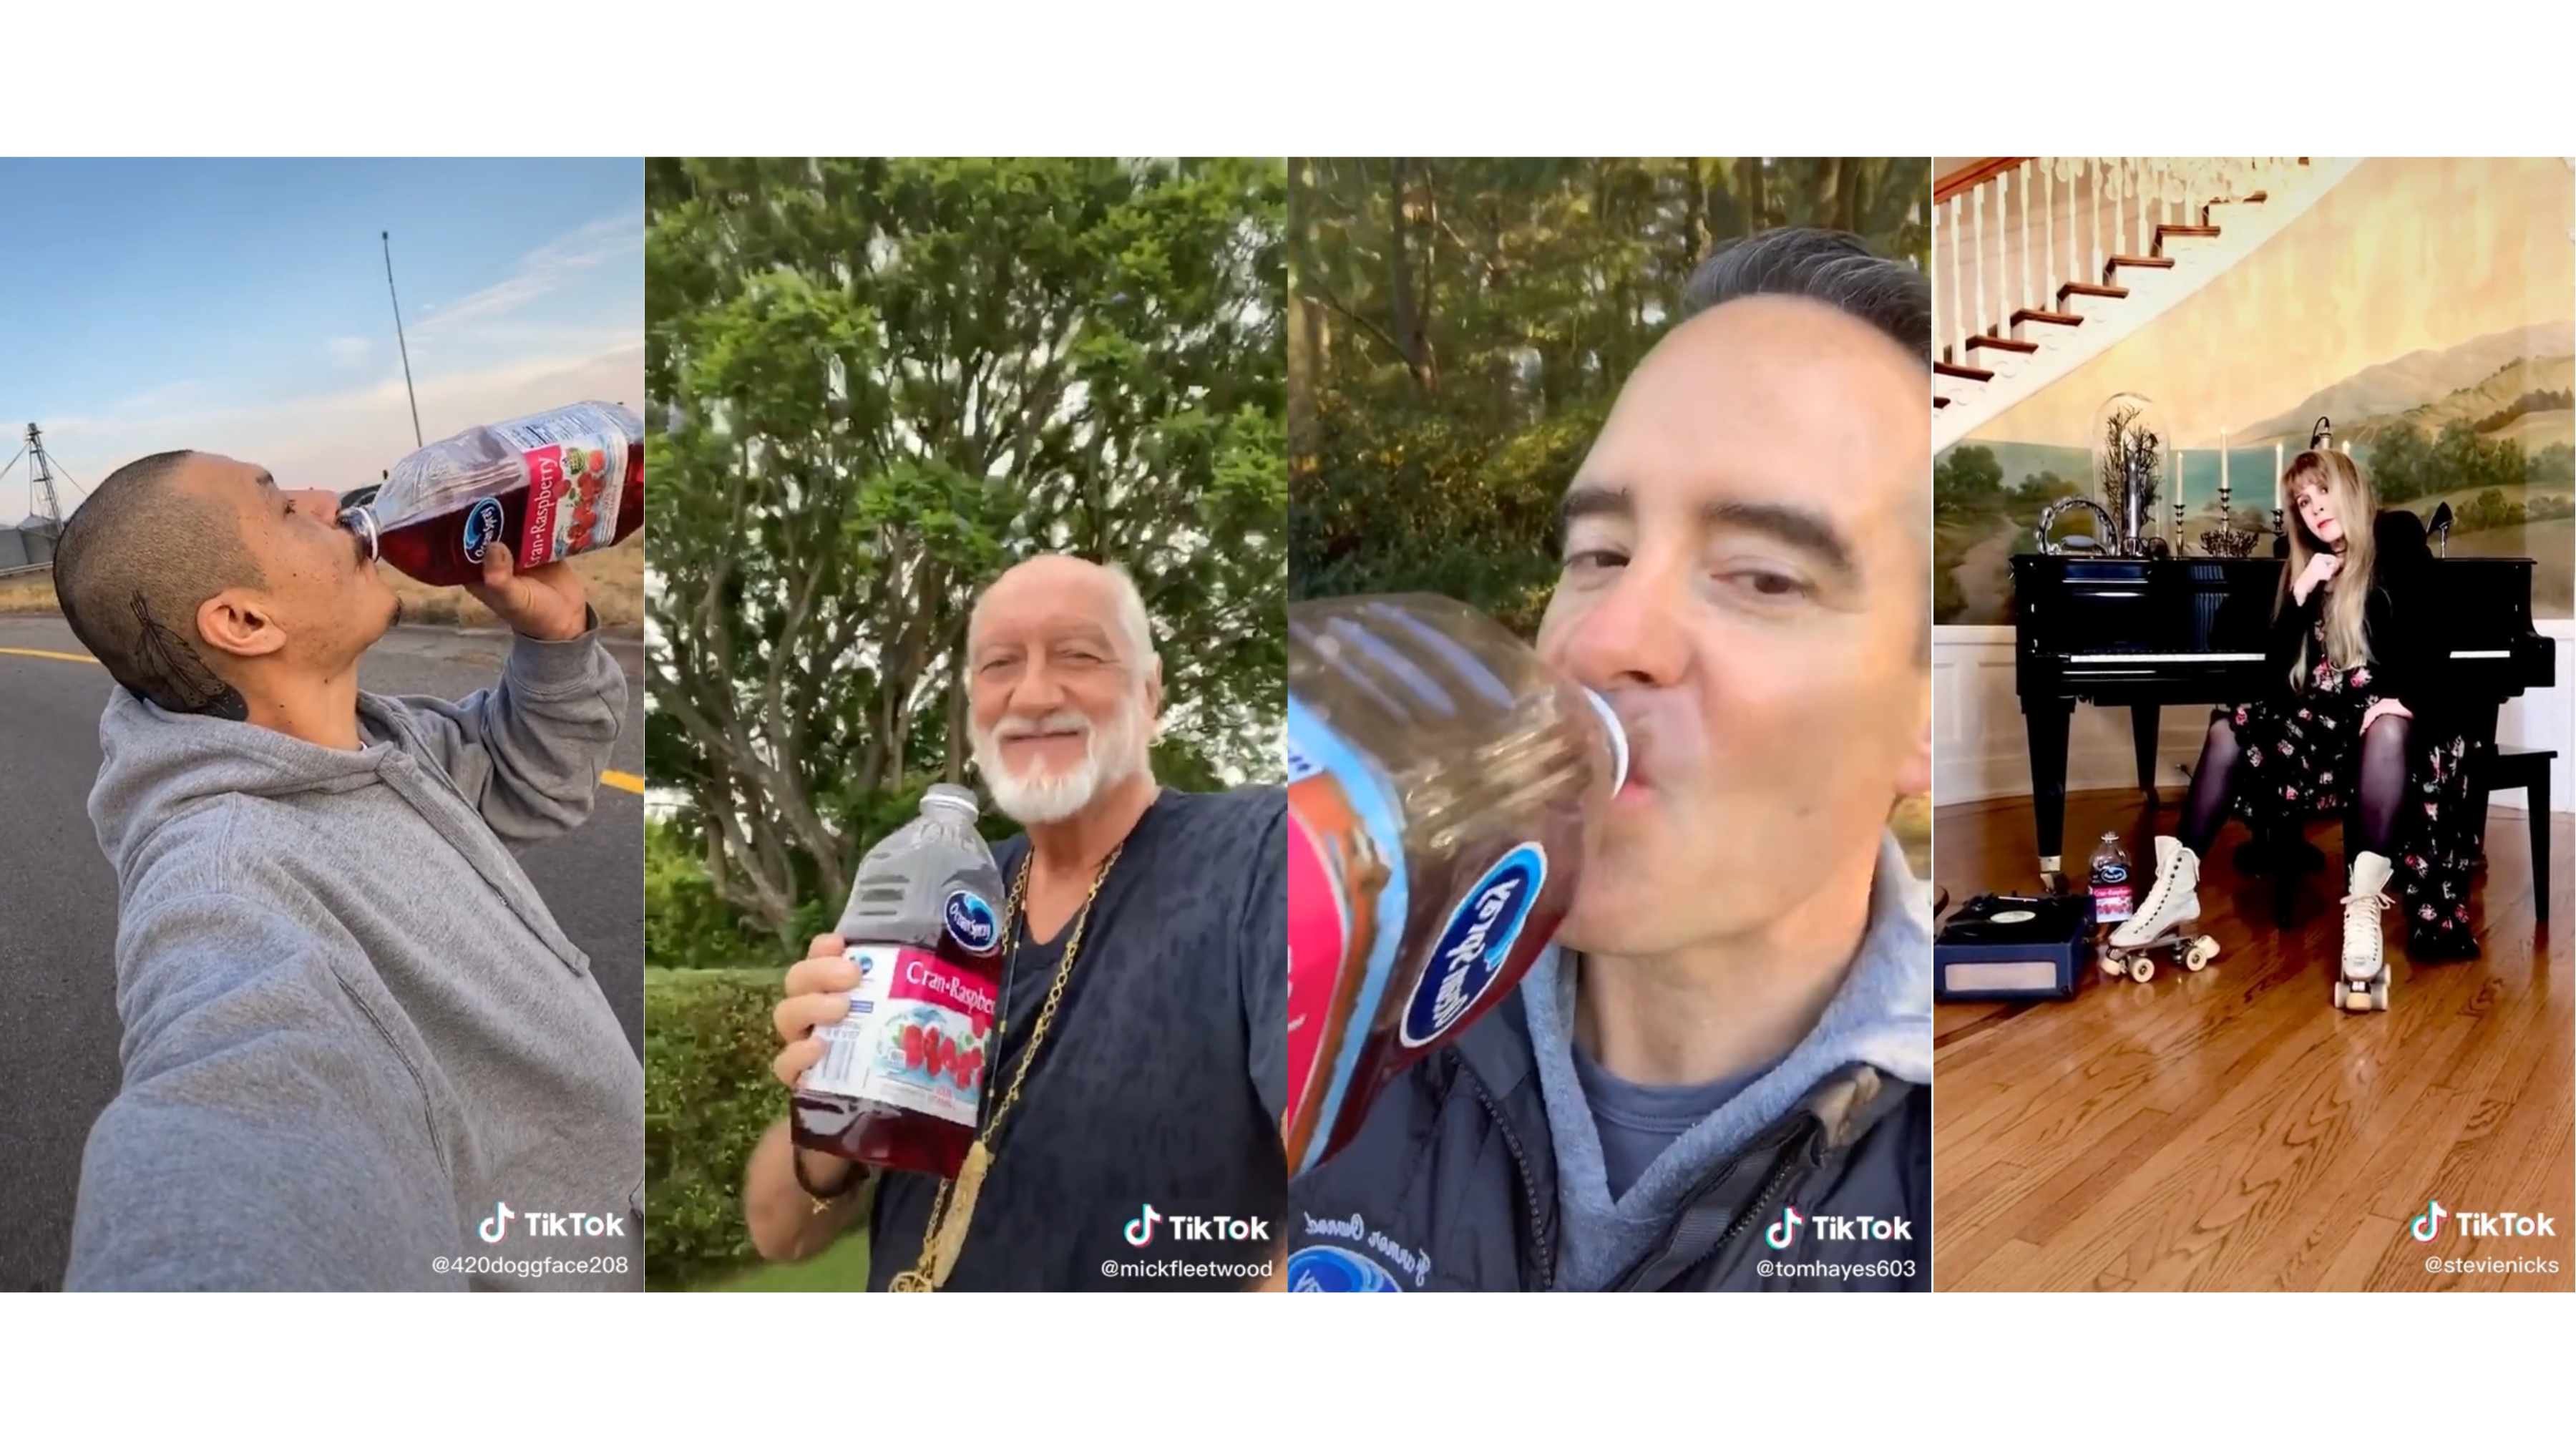 TikTok X Ocean Spray Compilation